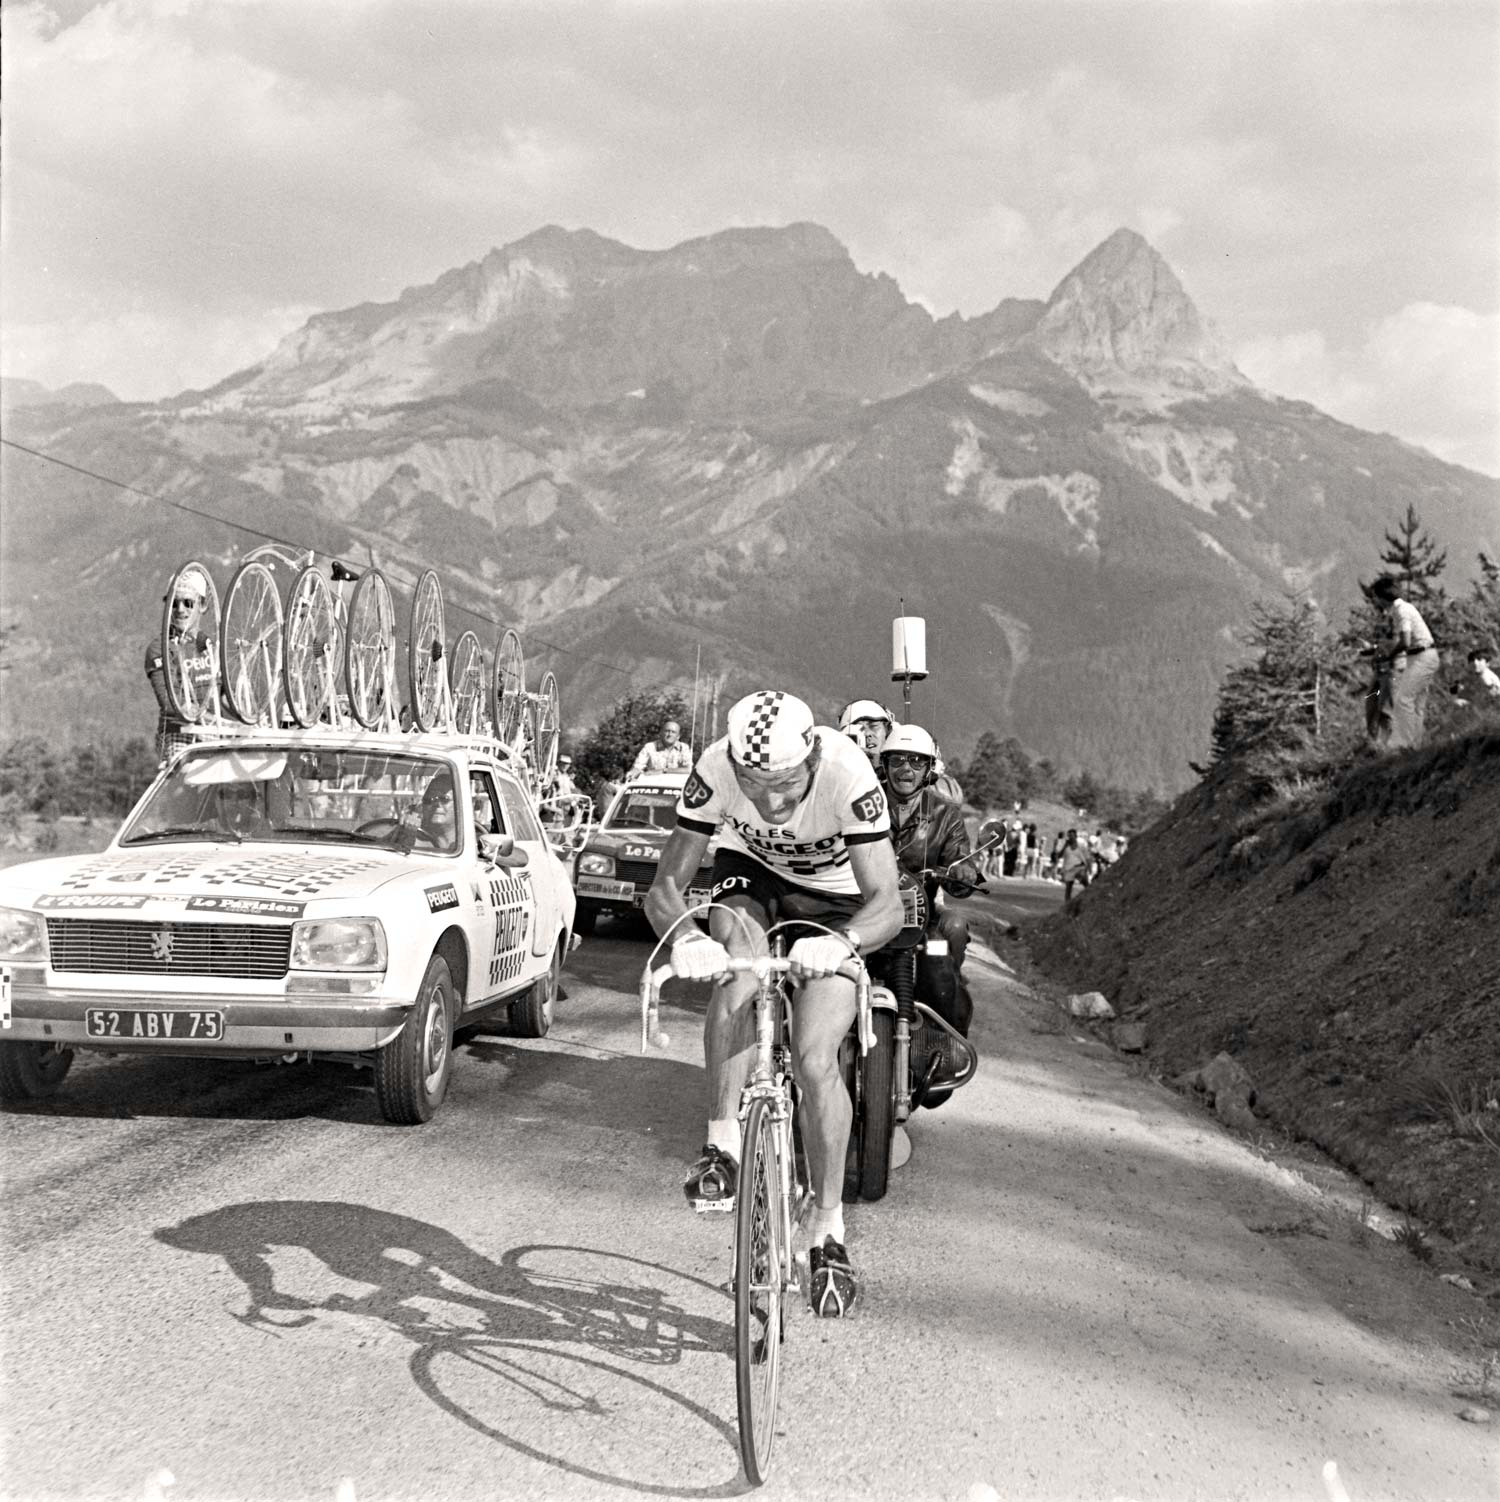 Bernard Thevenet rides to victory through the French Alps in the 1975 Tour de France